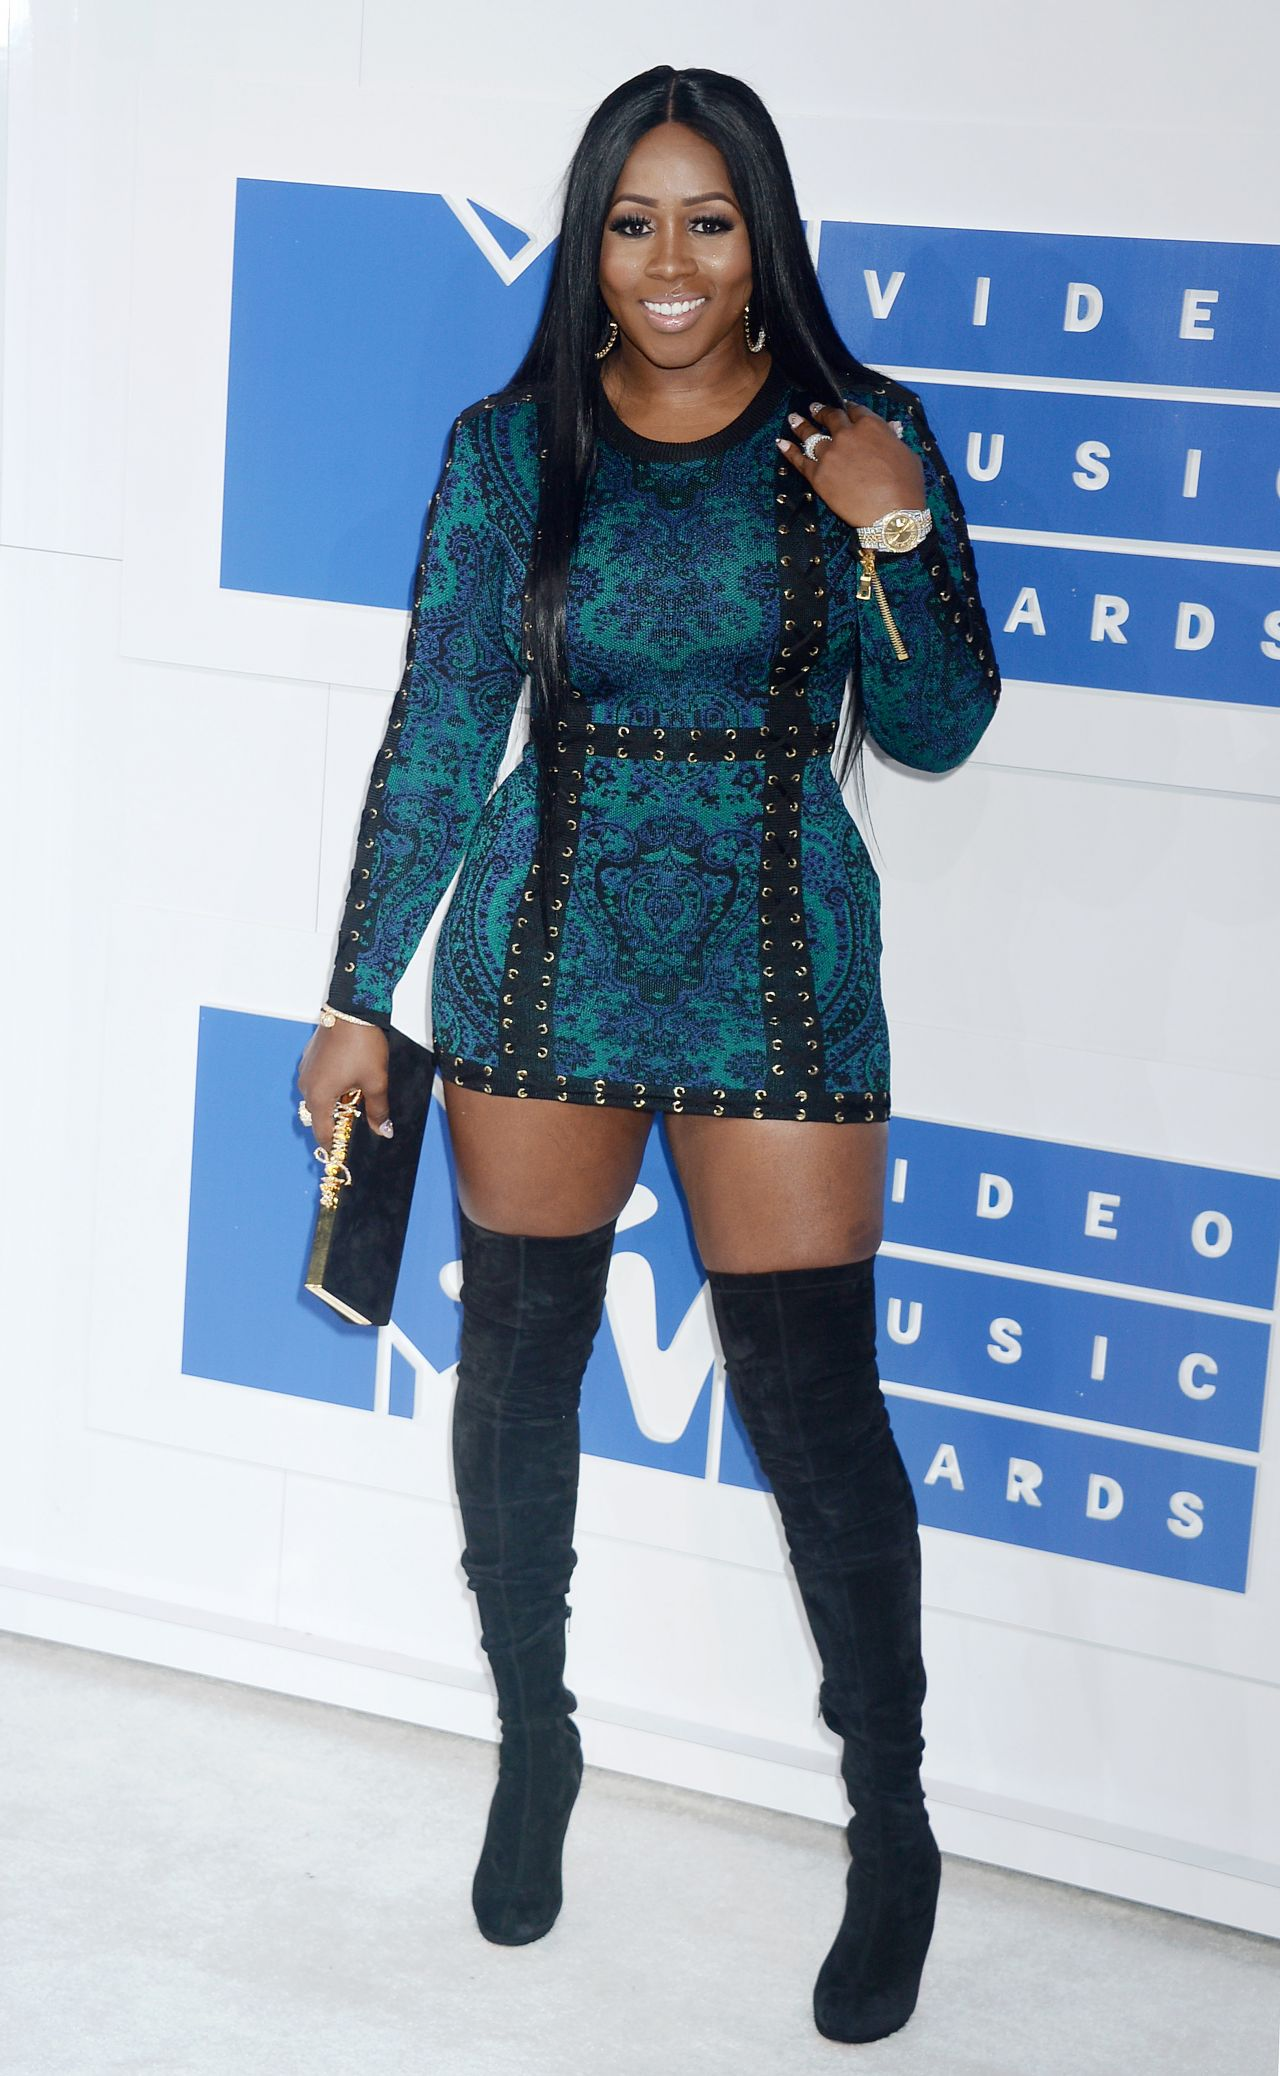 Remy Ma Mtv Video Music Awards 2016 In New York City 8